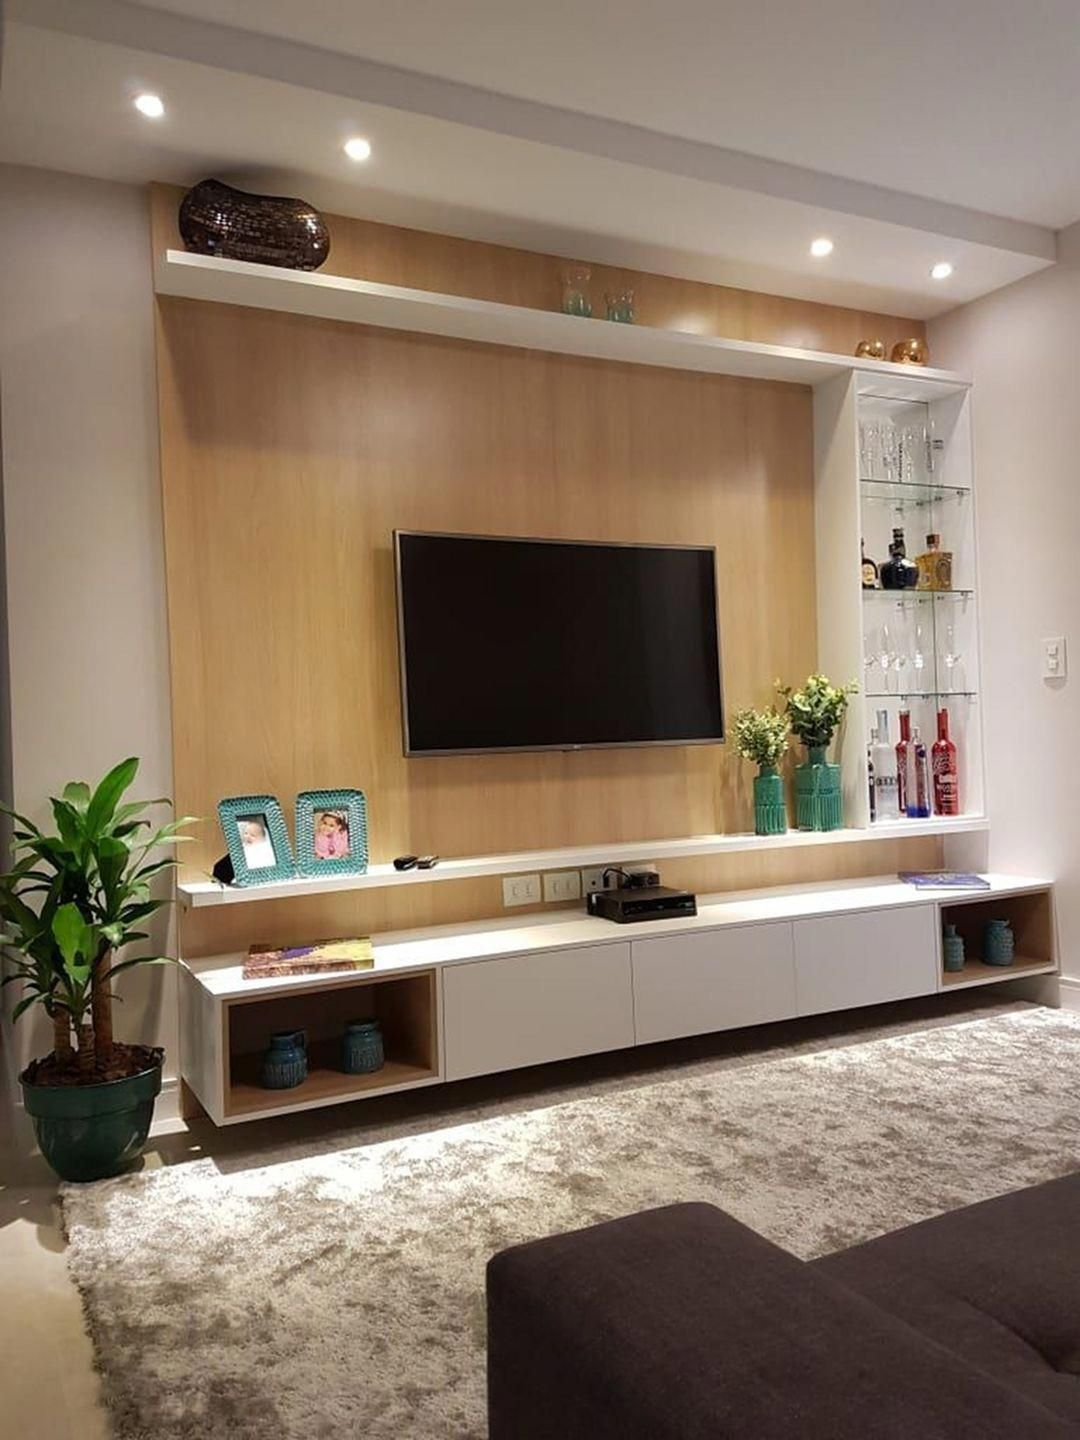 Livingroomdesigns Tv Room Design Living Room Tv Wall Living Room Tv Unit Designs #tv #decorations #living #room